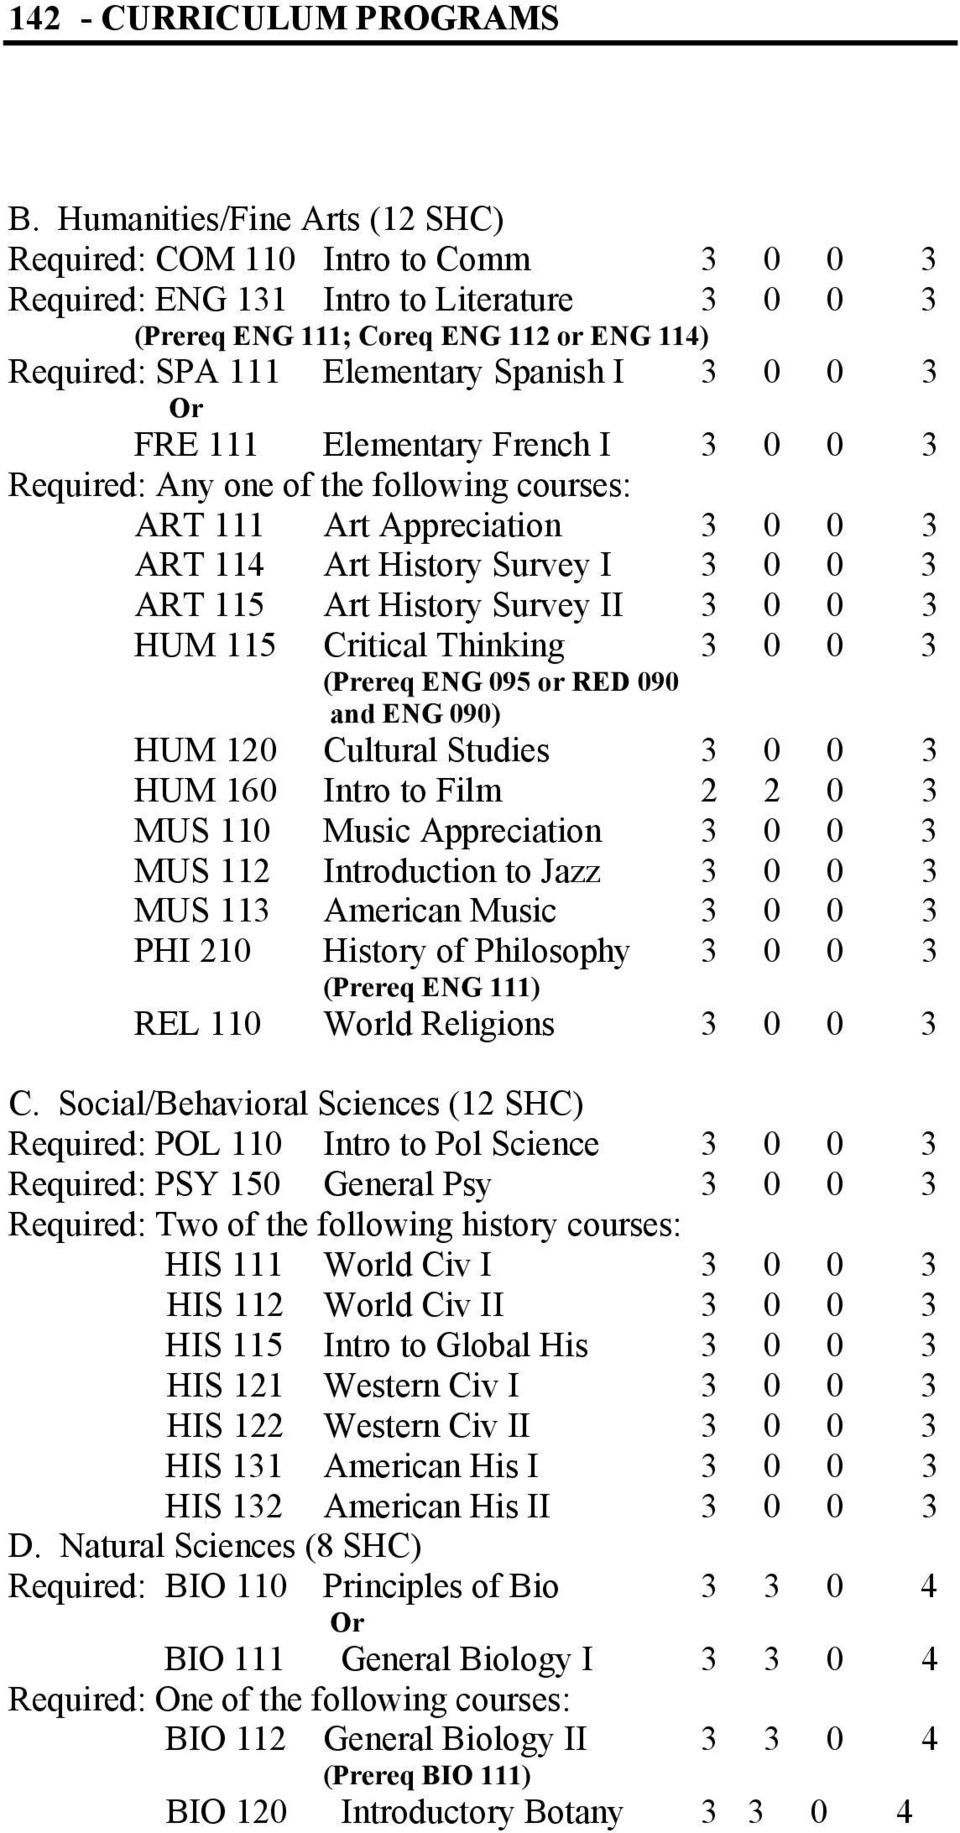 111 Elementary French I Required: Any one of the following courses: ART 111 Art Appreciation ART 114 Art History Survey I ART 115 Art History Survey II HUM 115 Critical Thinking (Prereq ENG 095 or